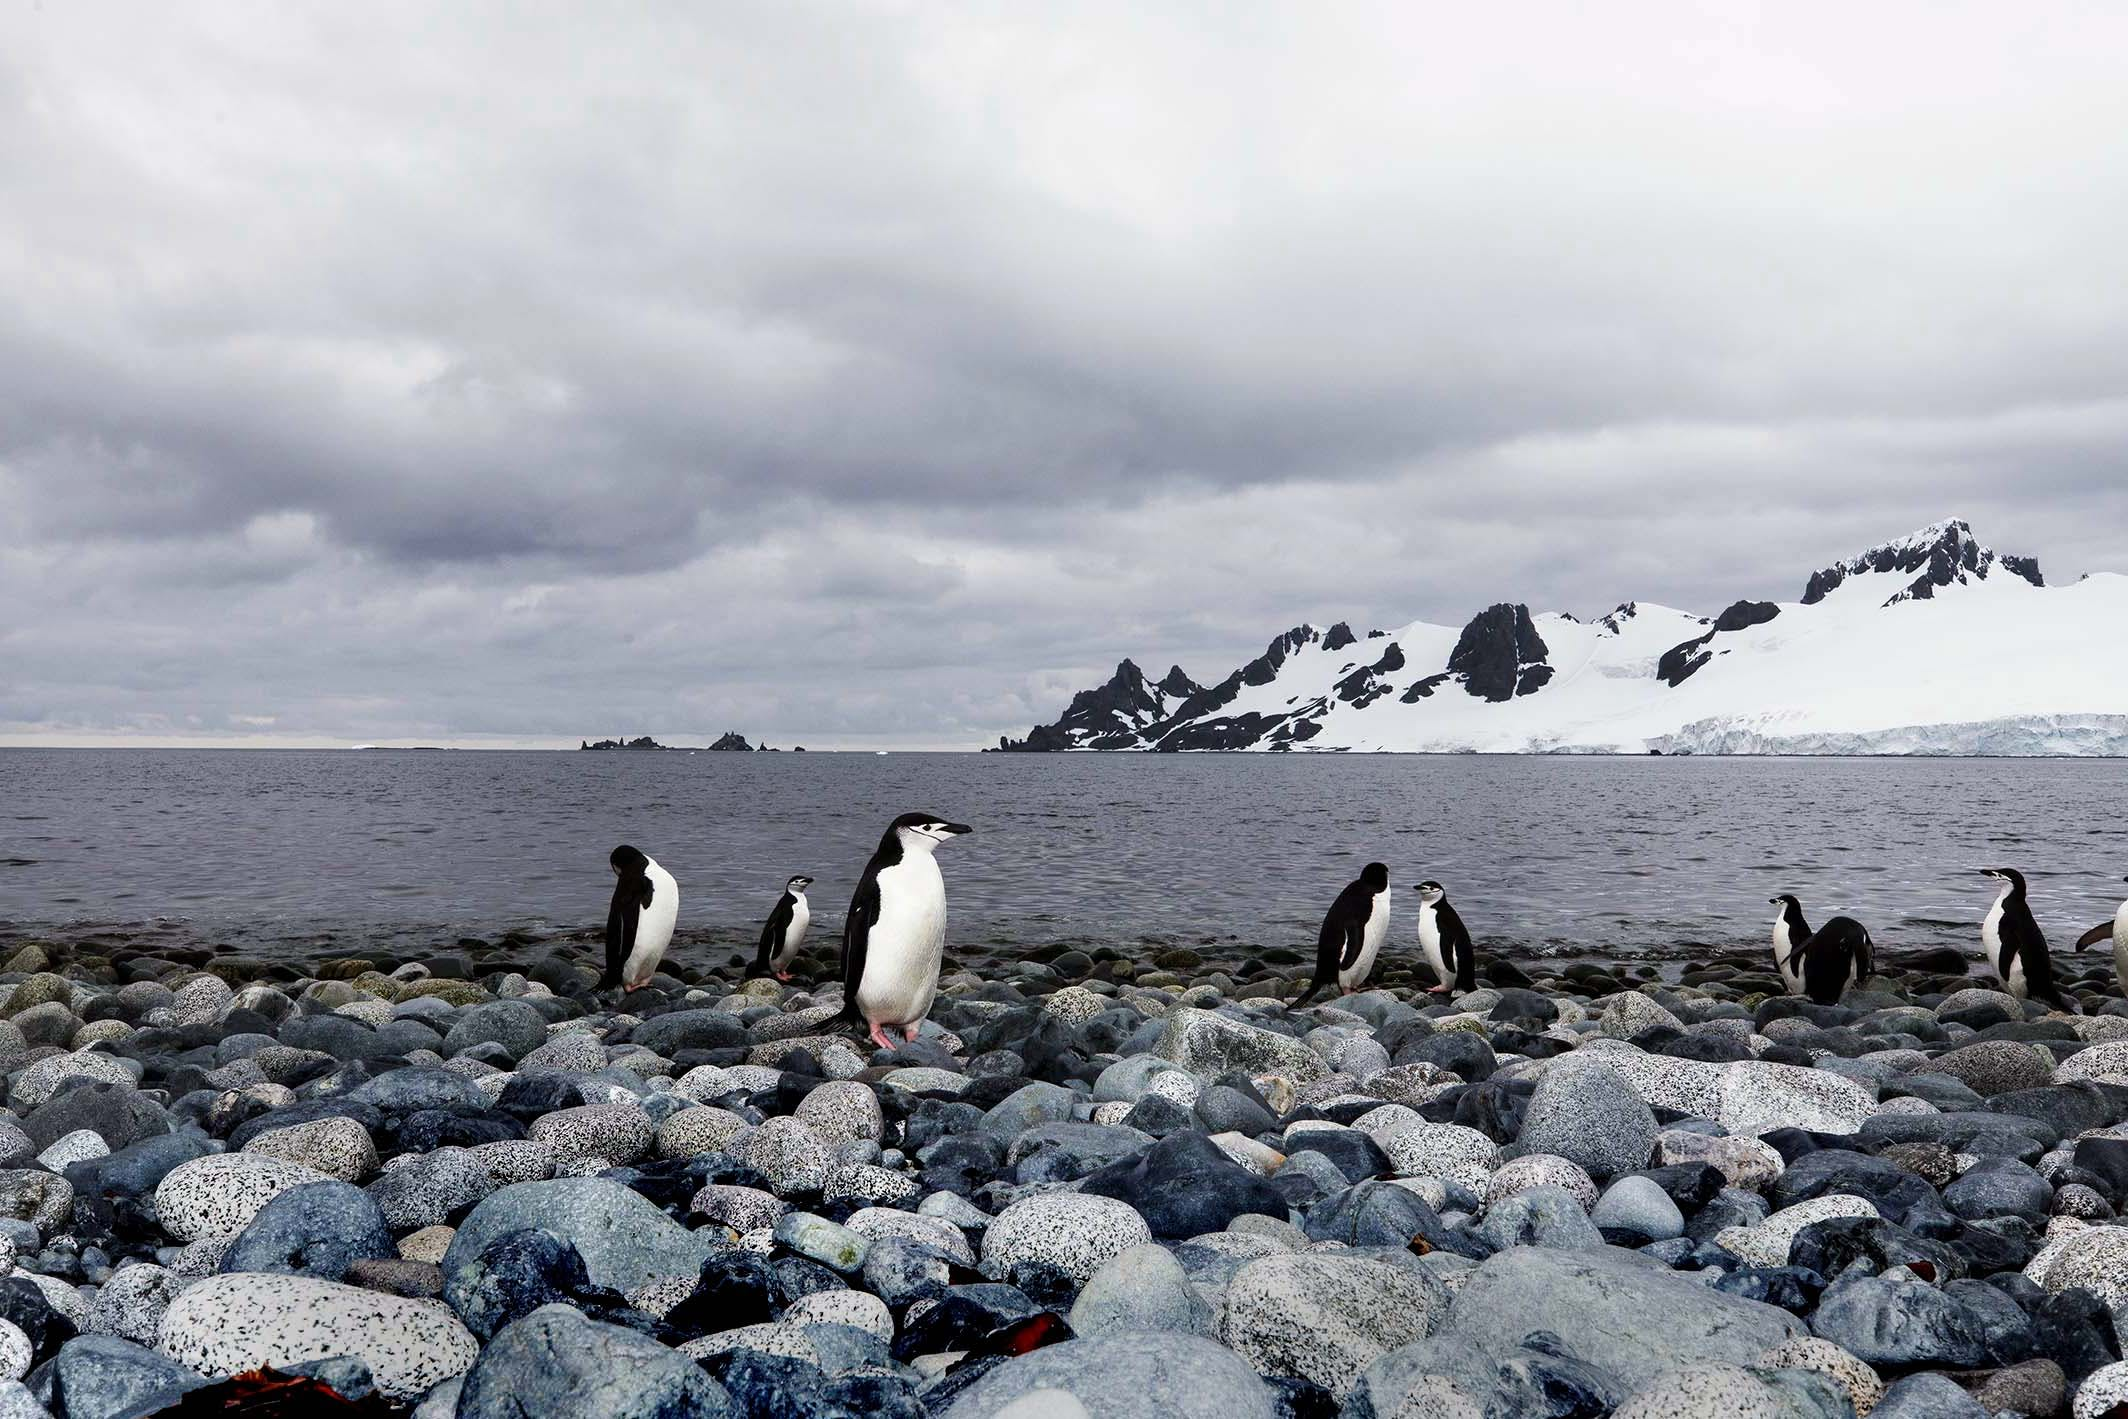 Penguins are perhaps the most popular subject in Antarctica photography.